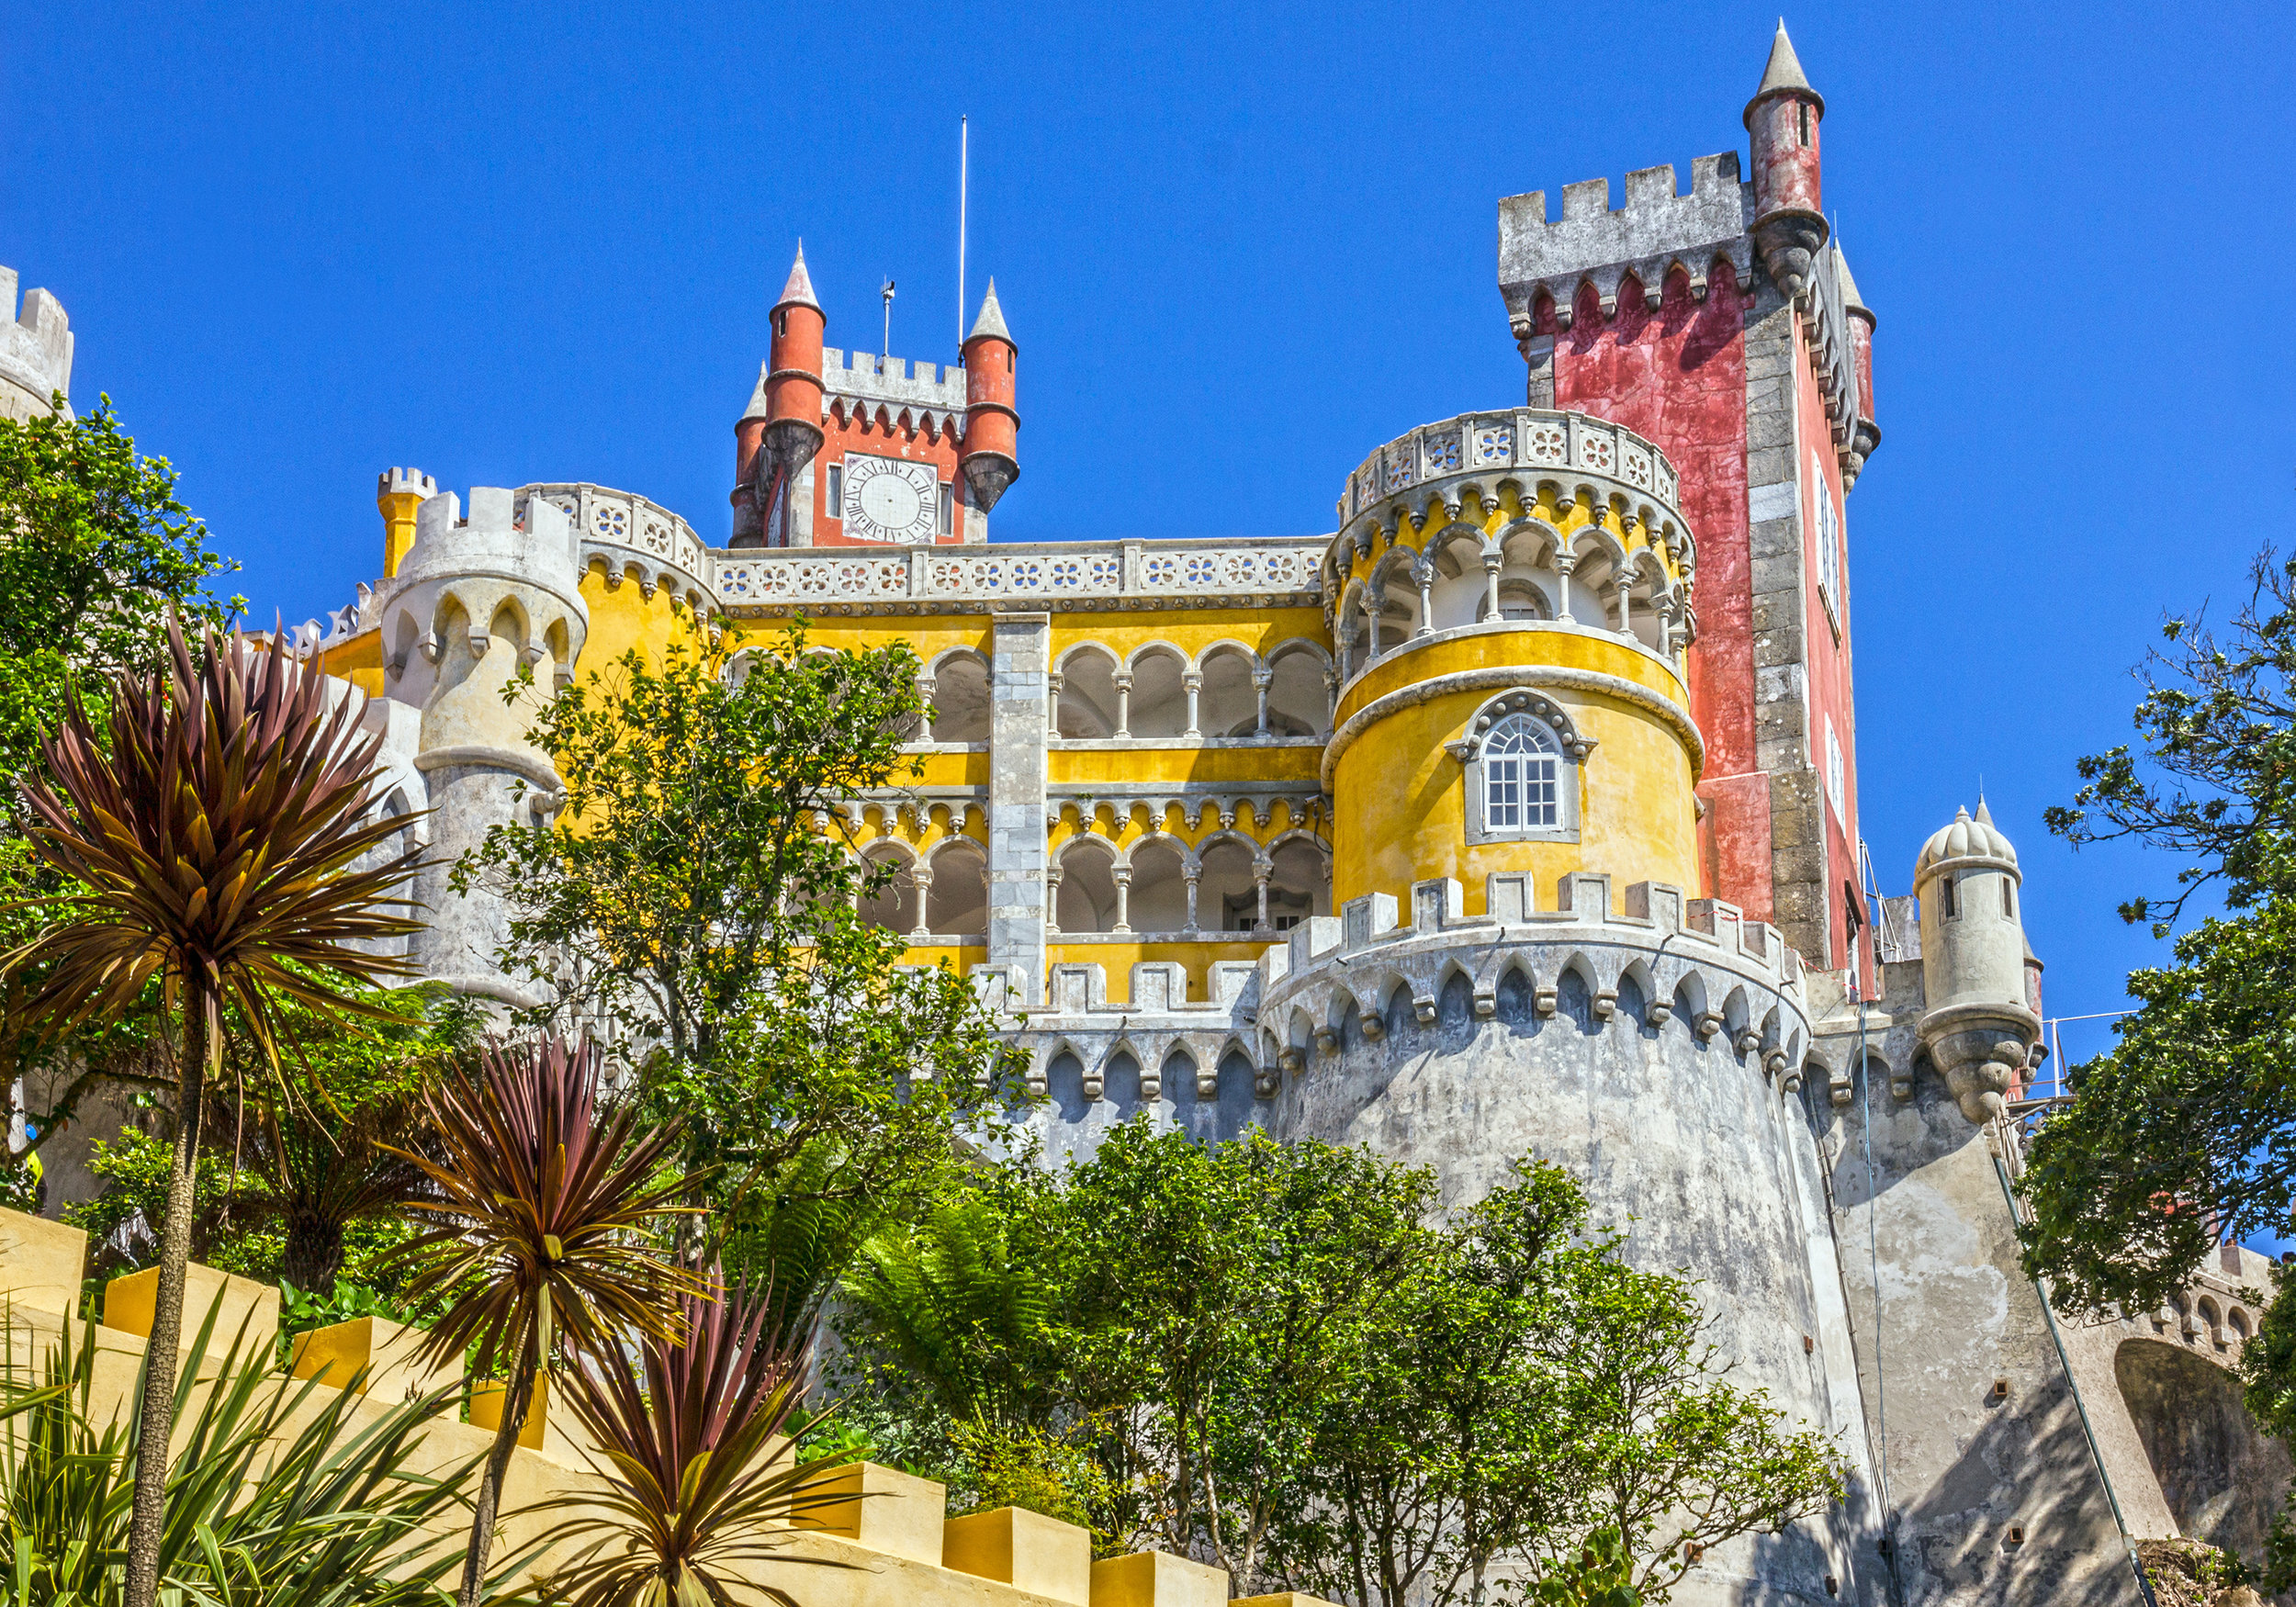 Half Day Tour To Palácio da Pena - Thursday February 27, 2020 Beginning around 2pm and finishing up at sunset.The tour will include a stop a the Palace, Sintra, Cape Roca (western most point of Europe), Cascais (depending on time) and then back to the HotelPrice for this optional excursion is $45.00 USD per person.Requires a minimum of 35 persons / bus.